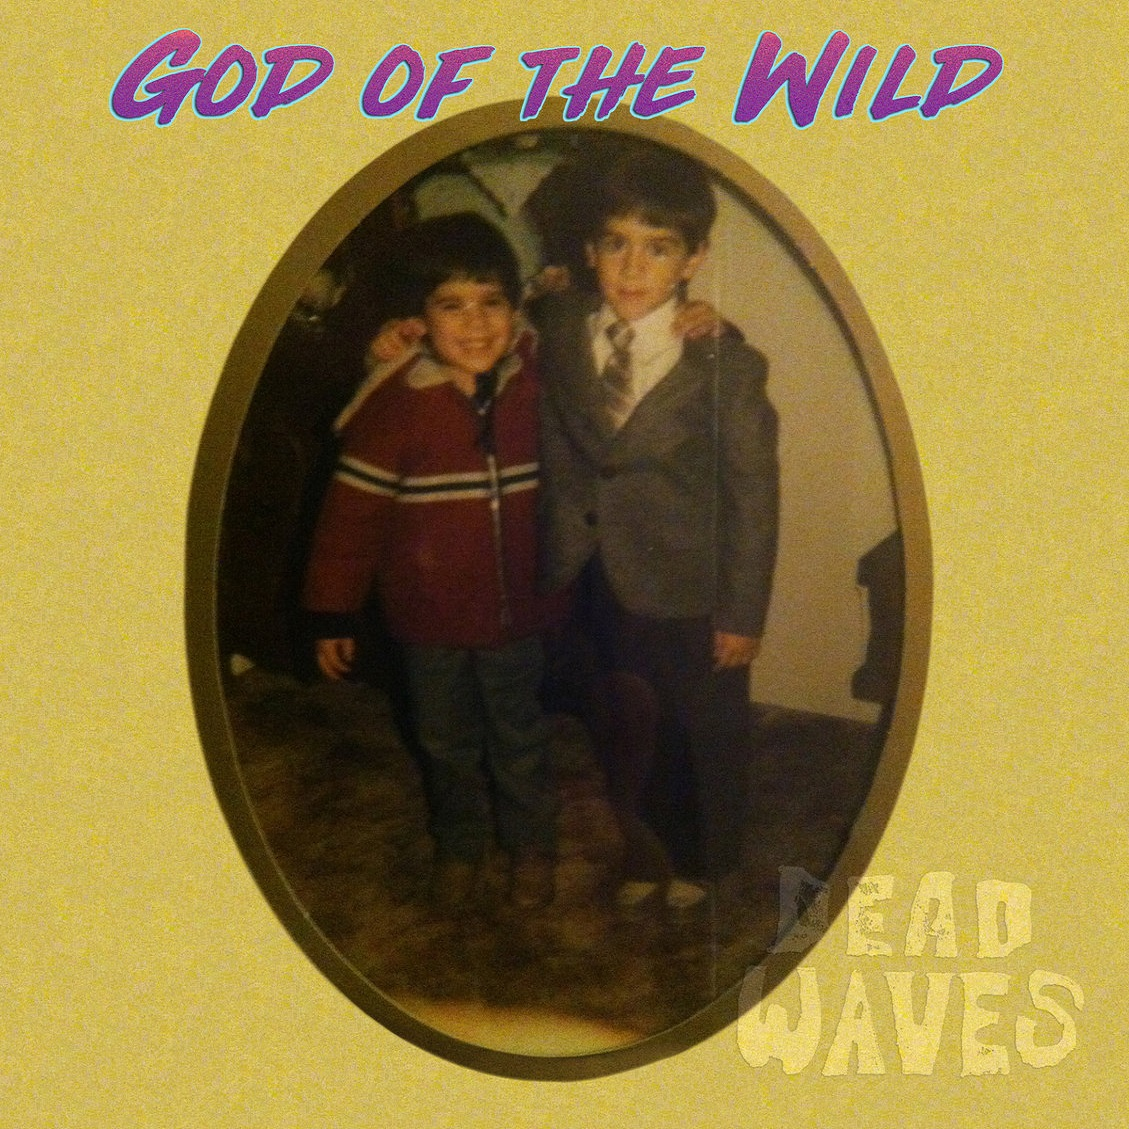 dead waves god of the wild